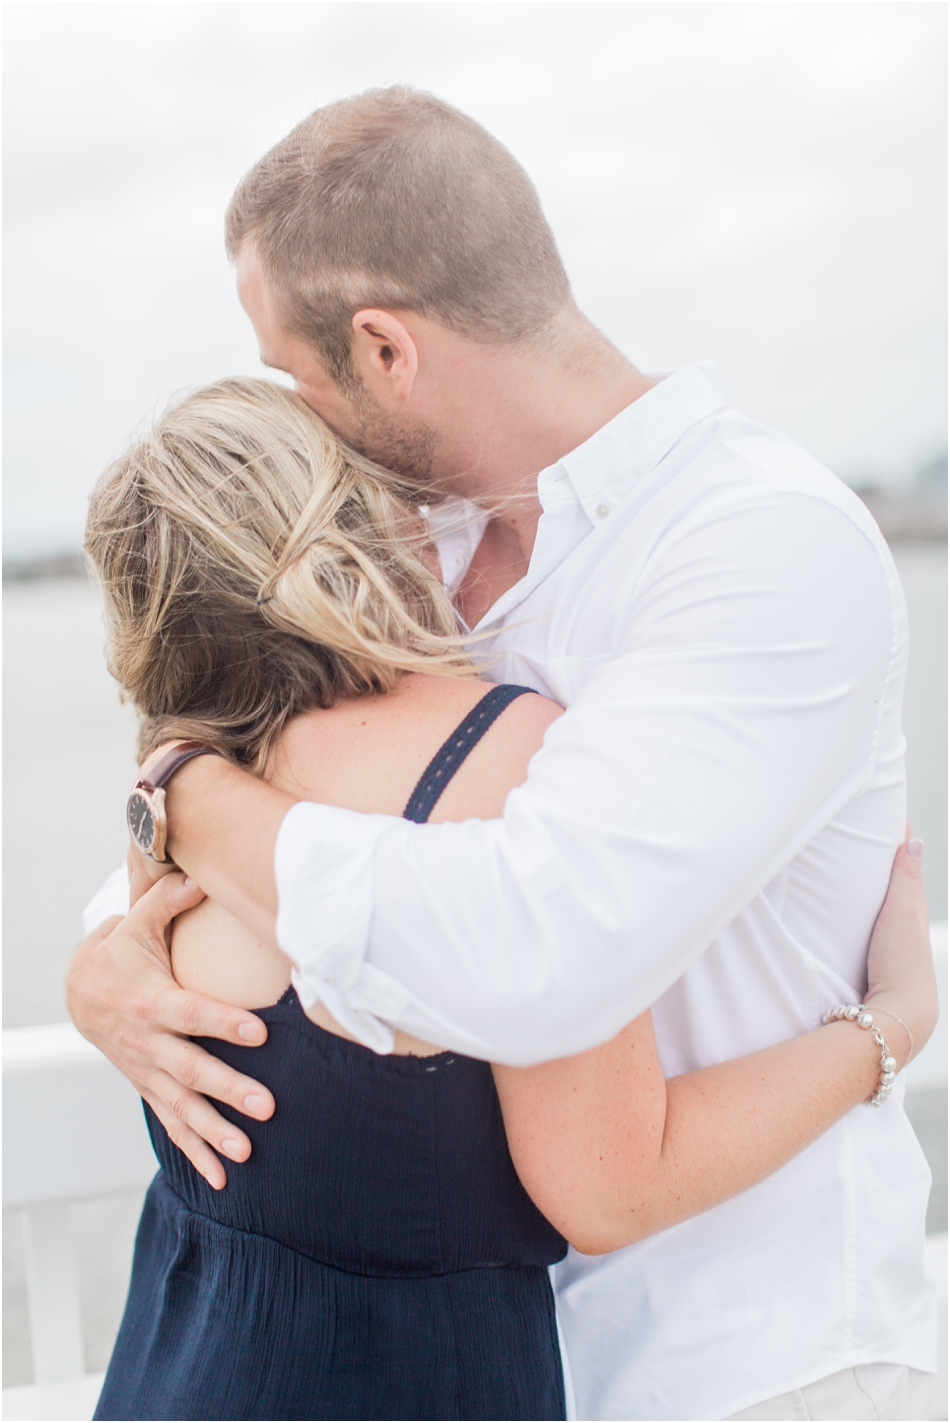 humarock_scituate_beach_harbor_shih_tzu_engagement_boston_massachusetts_cape_cod_new_england_wedding_photographer_Meredith_Jane_Photography_photo_1795.jpg